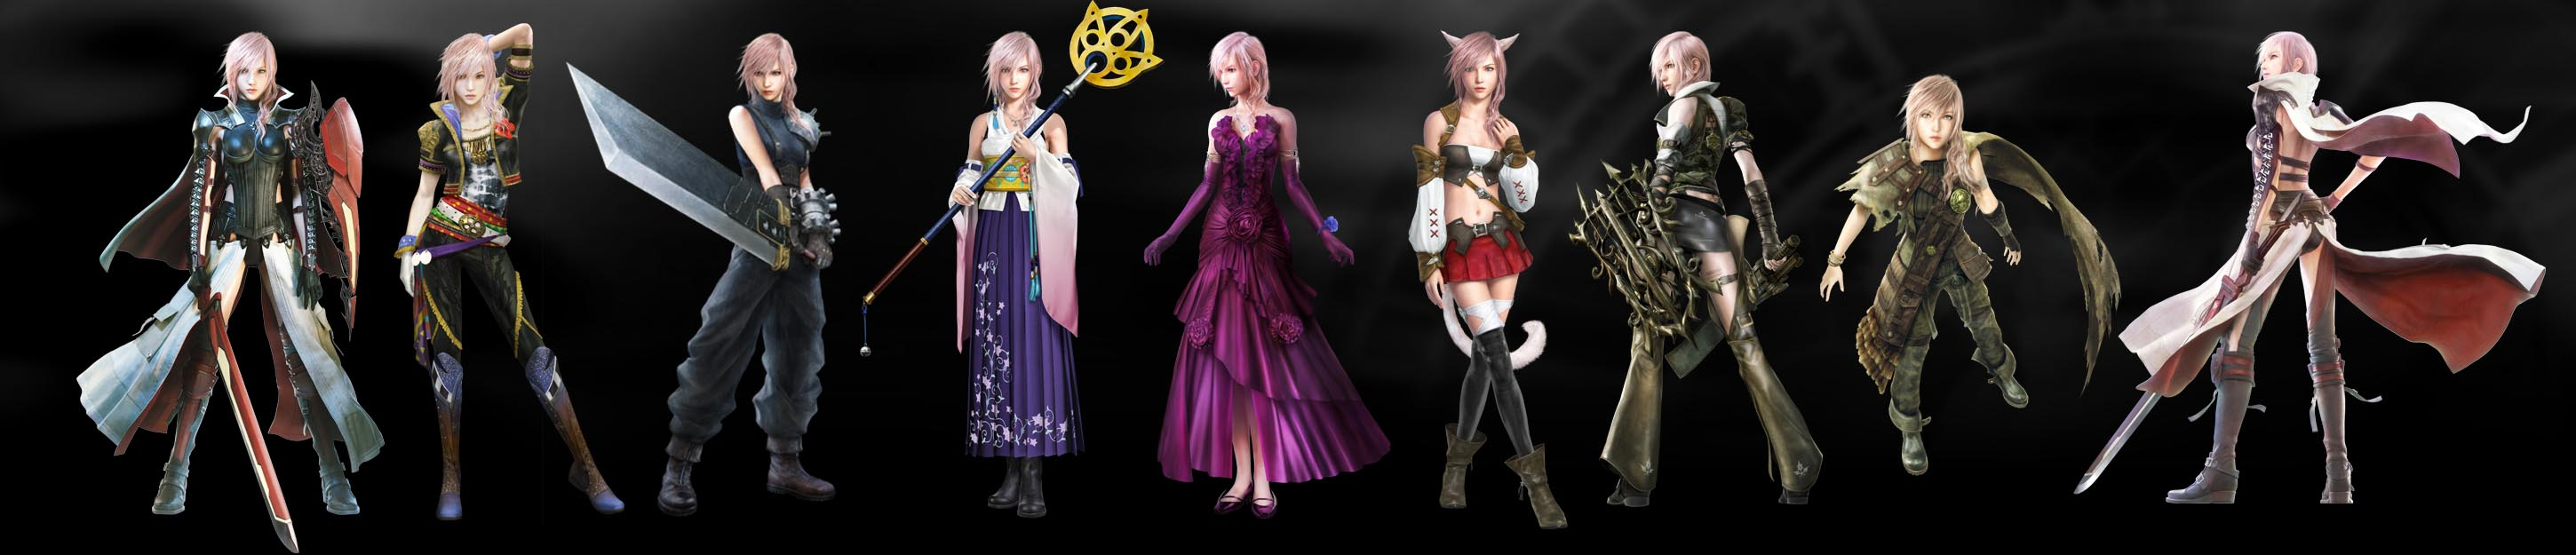 Lightning Returns Final Fantasy XIII costumes line